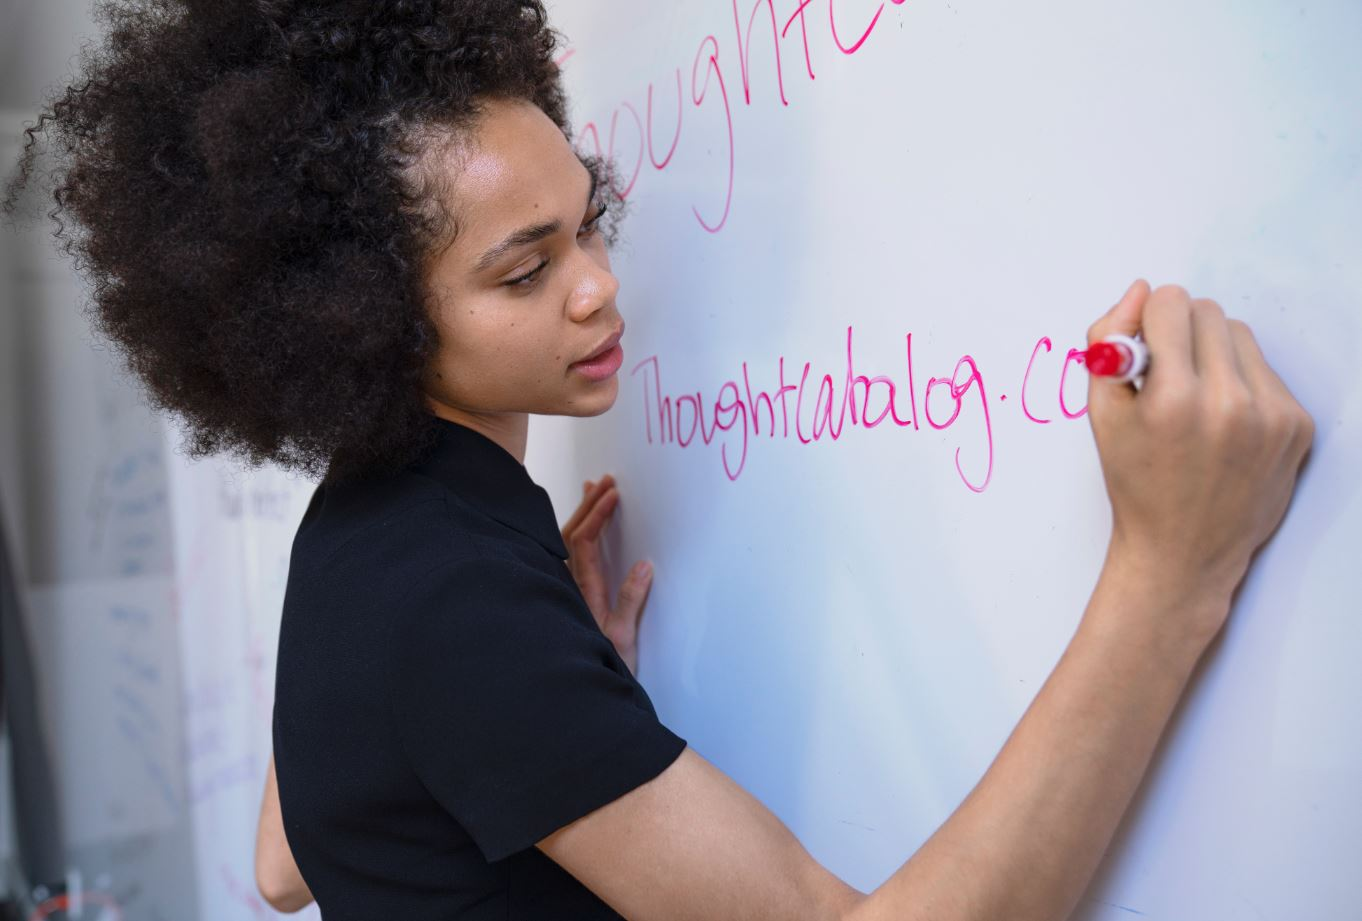 Want to boost Maths? Bring in more female teachers…